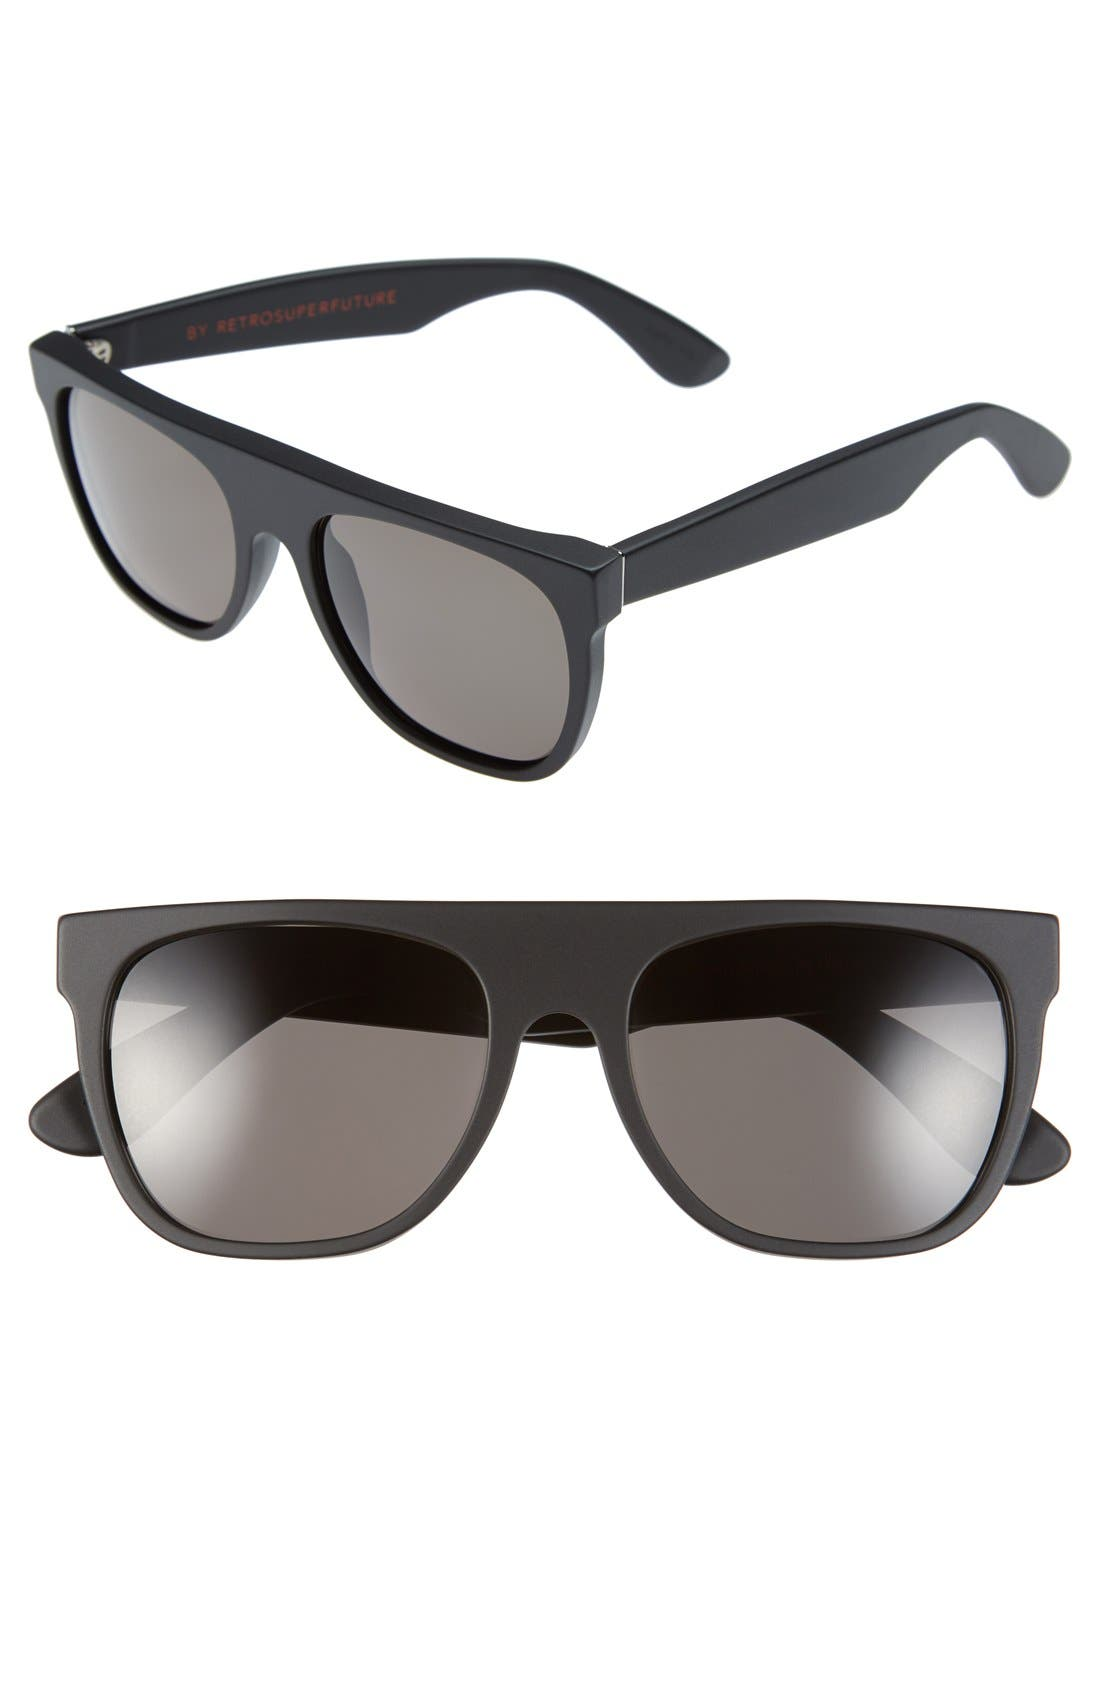 Main Image - SUPER by RETROSUPERFUTURE® 'Flat Top' 55mm Retro Sunglasses